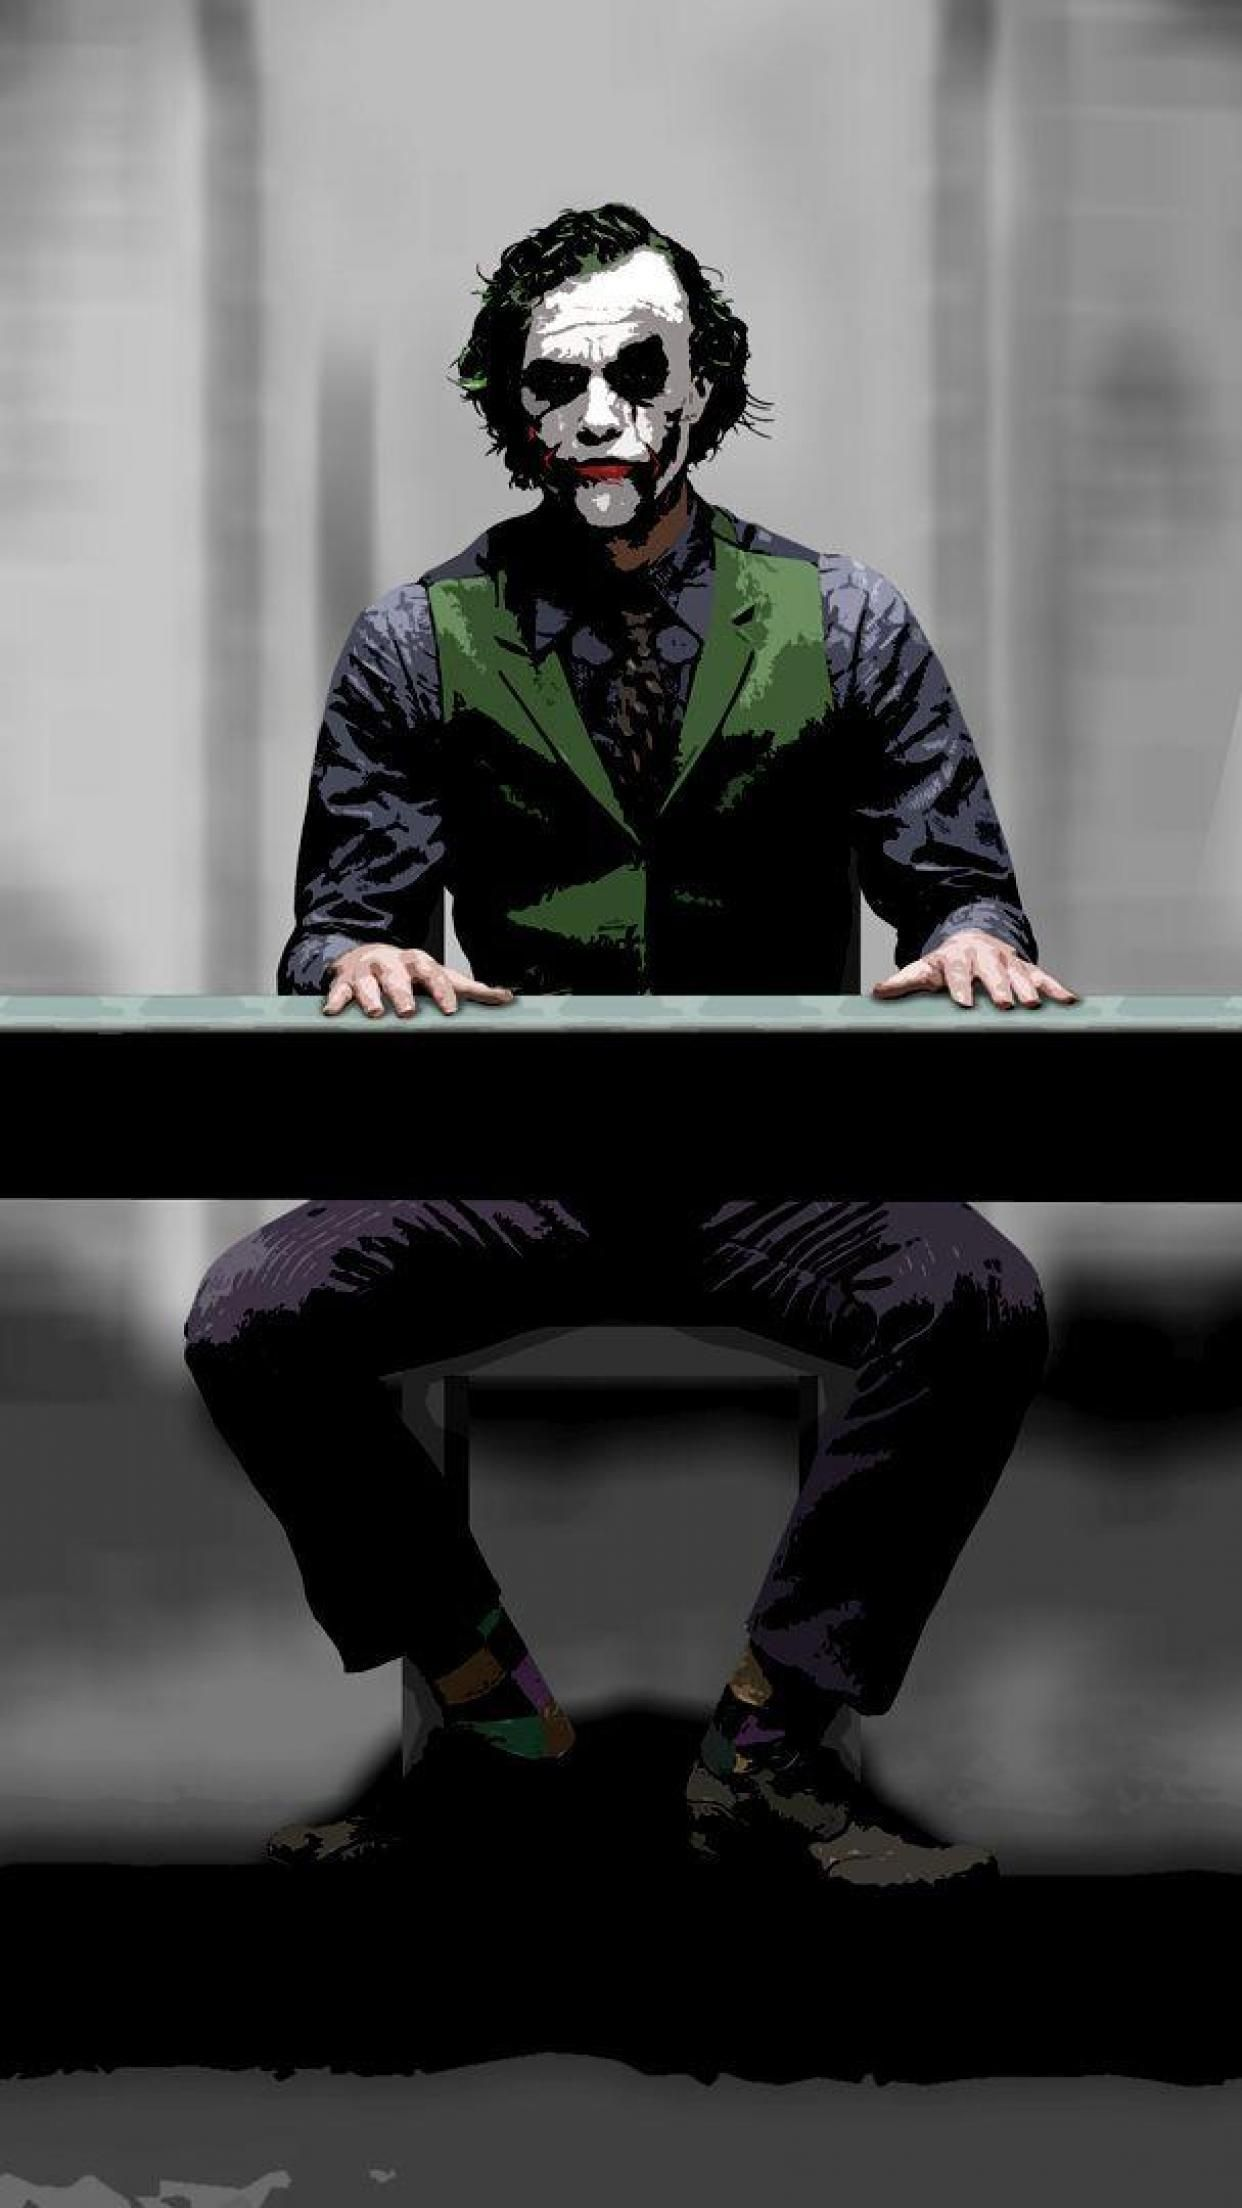 Joker Hd Wallpapers For Iphone 6 32 Image Collections